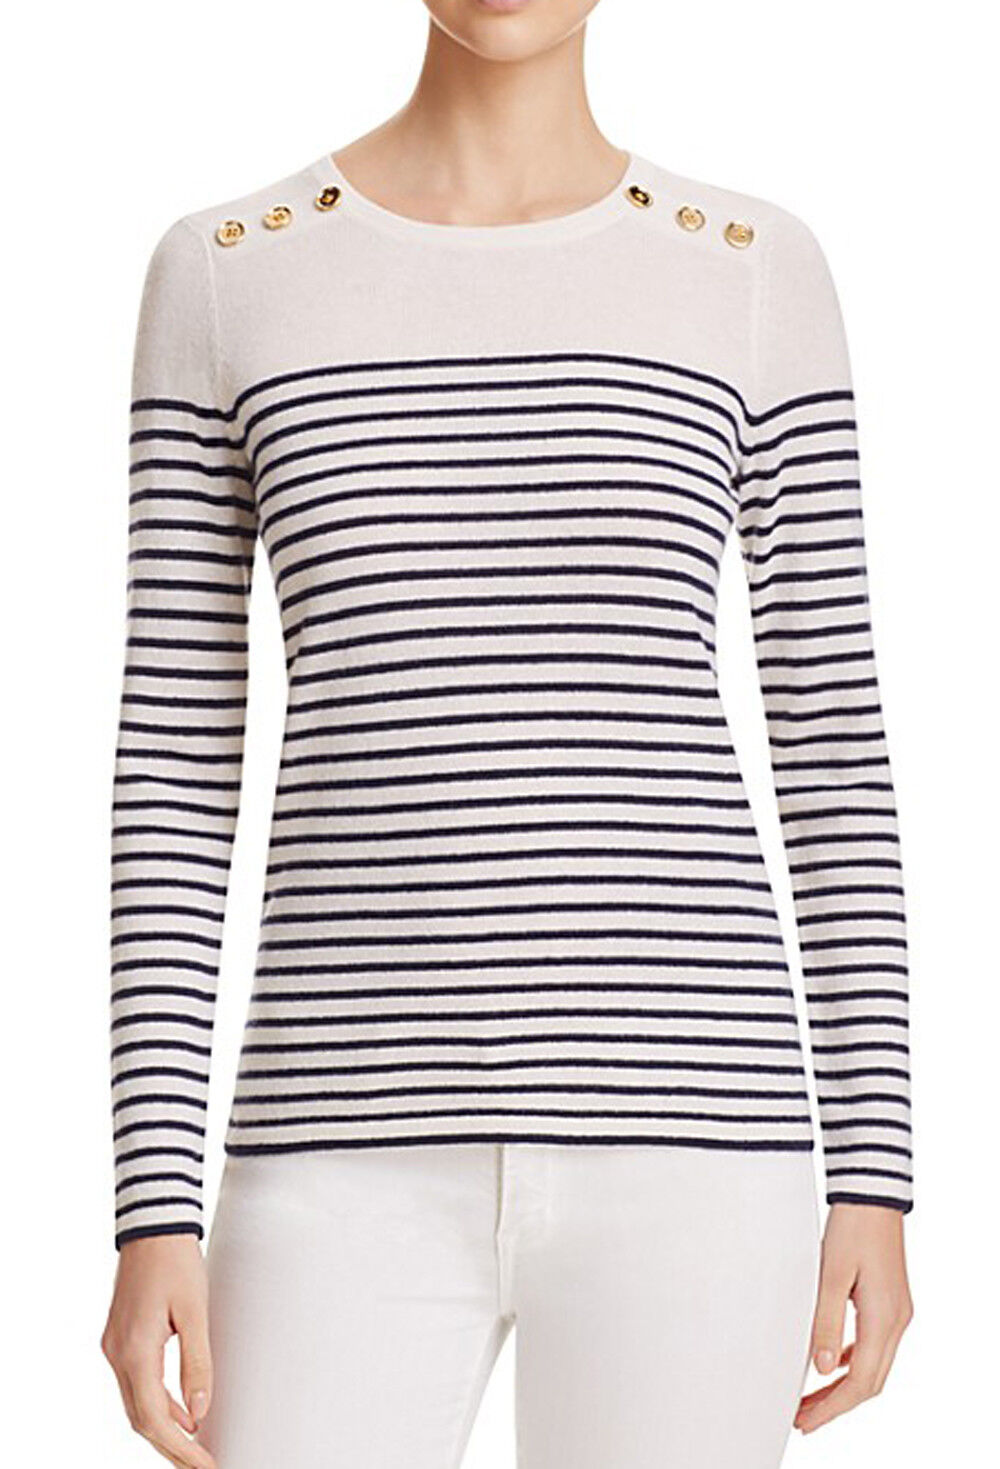 Brand Brand Brand New 100% Cashmere Women's Sweater from Bloomingdale's  178 Tags 56a0e1